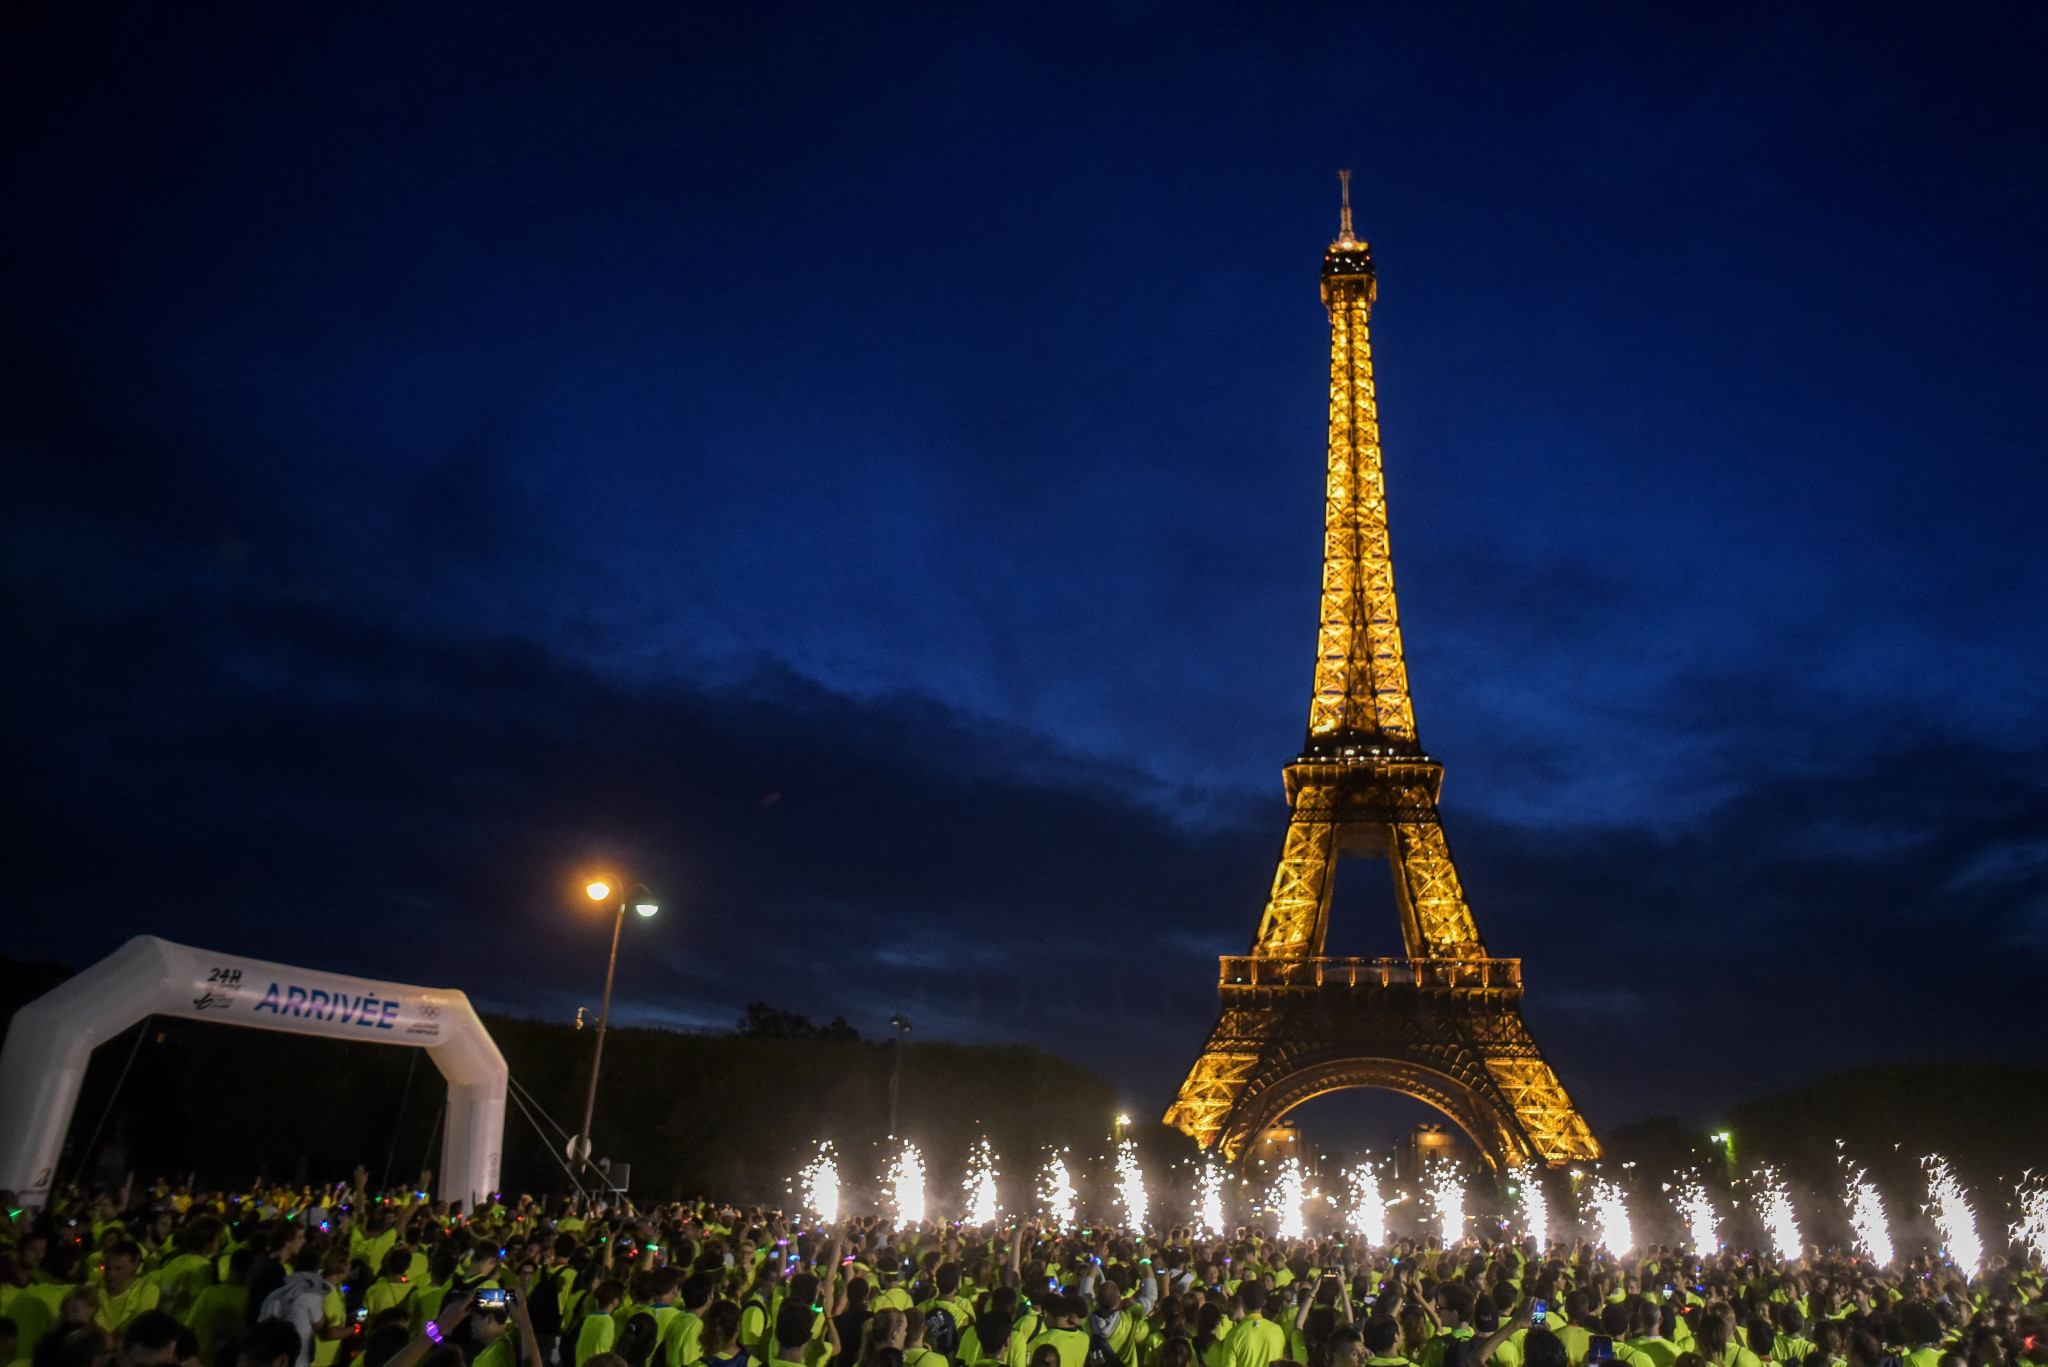 Paris 2024 has committed to best practice in the fight against gender and sexual orientation discrimination ©Getty Images